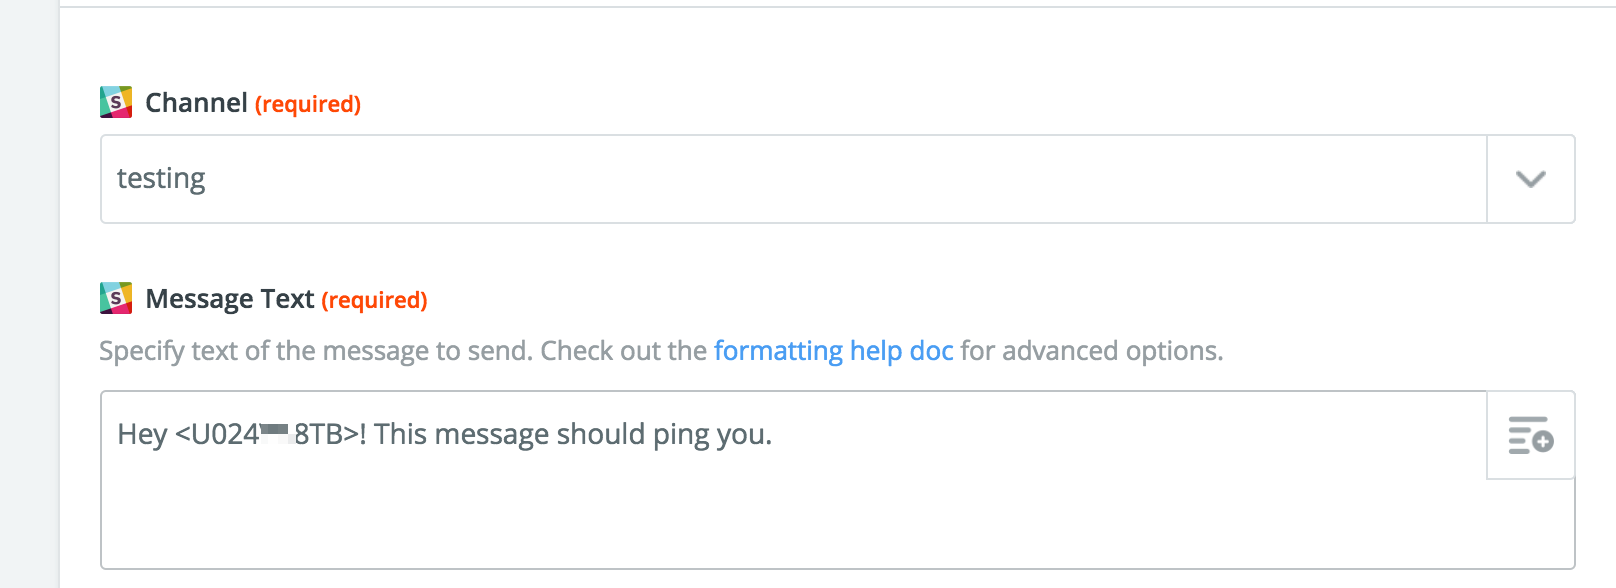 Slack message showing how to format the ID in sending out an @ message